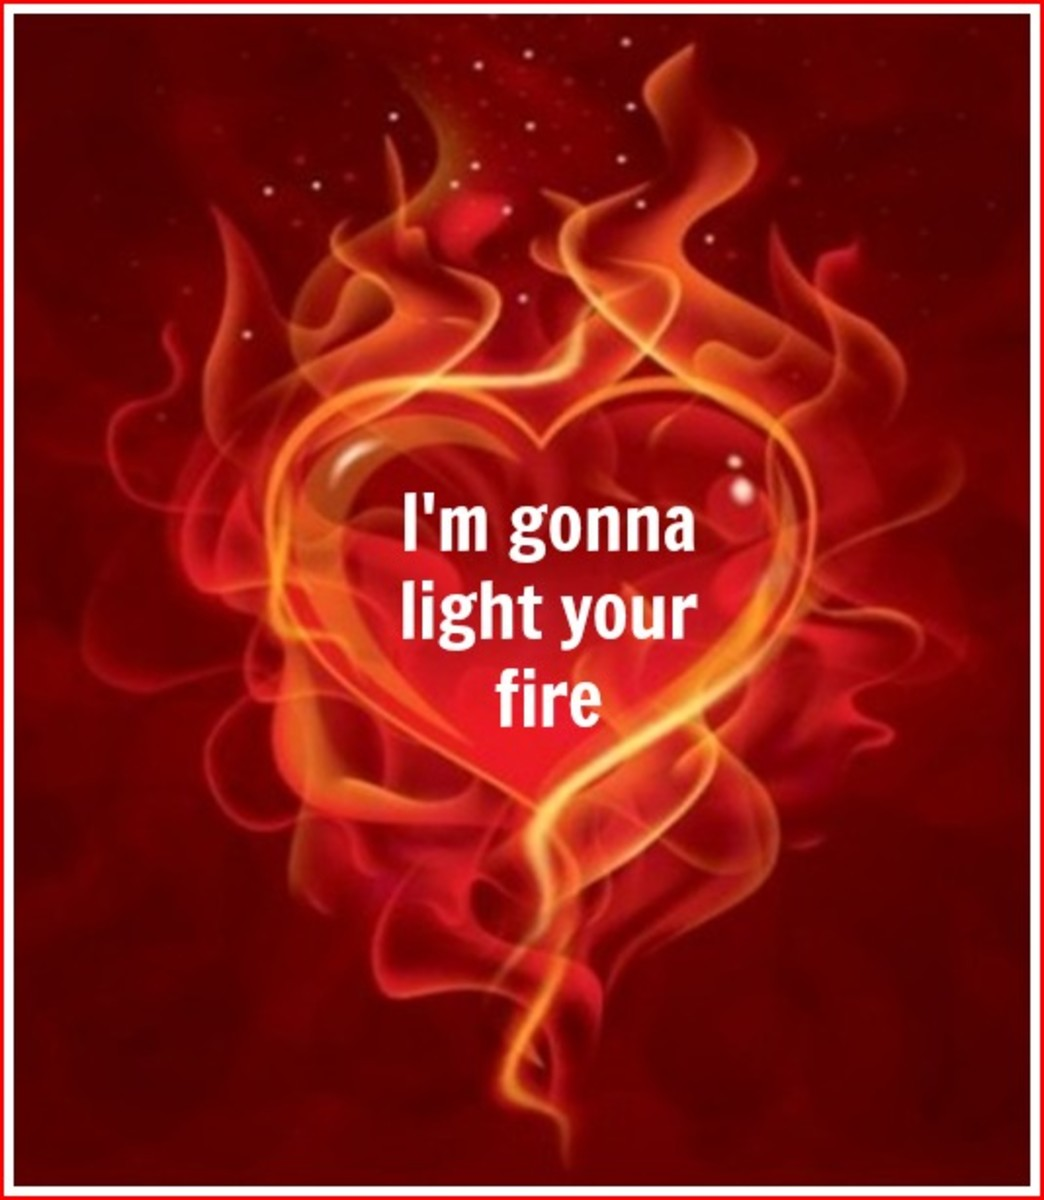 Light Your Fire Valentine's Day Card